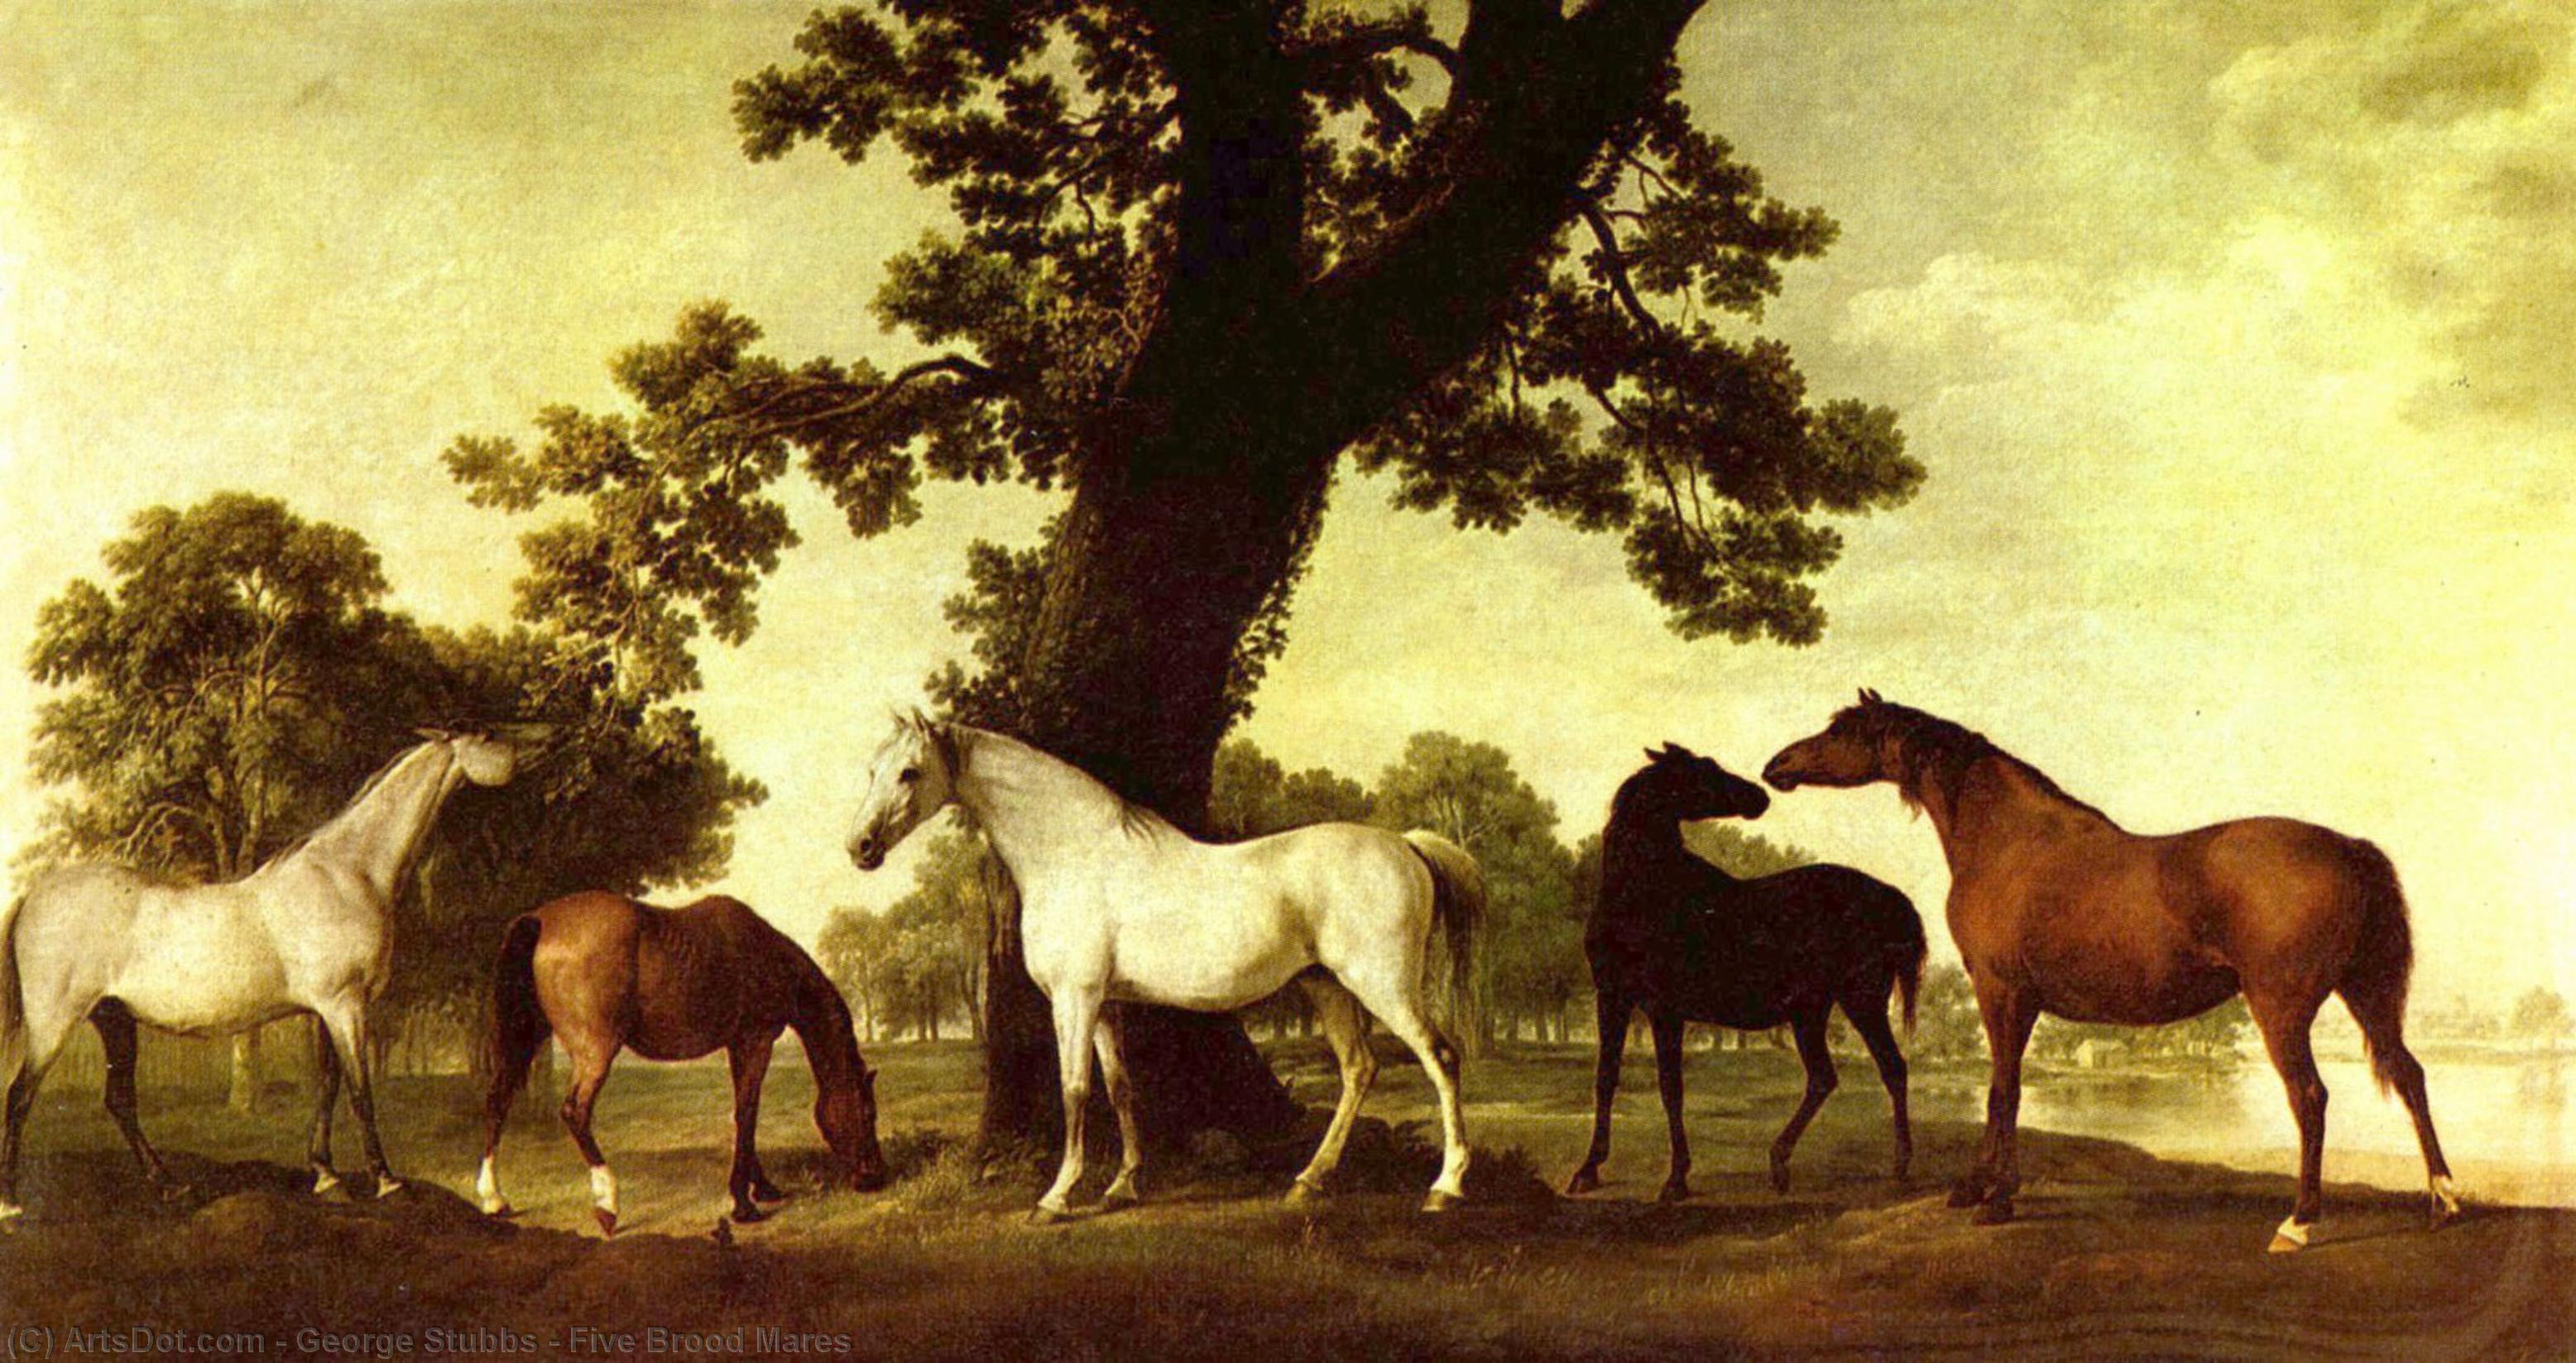 五育雏母马 通过 George Stubbs (1724-1806, United Kingdom) | 幀畫冊專輯 | ArtsDot.com